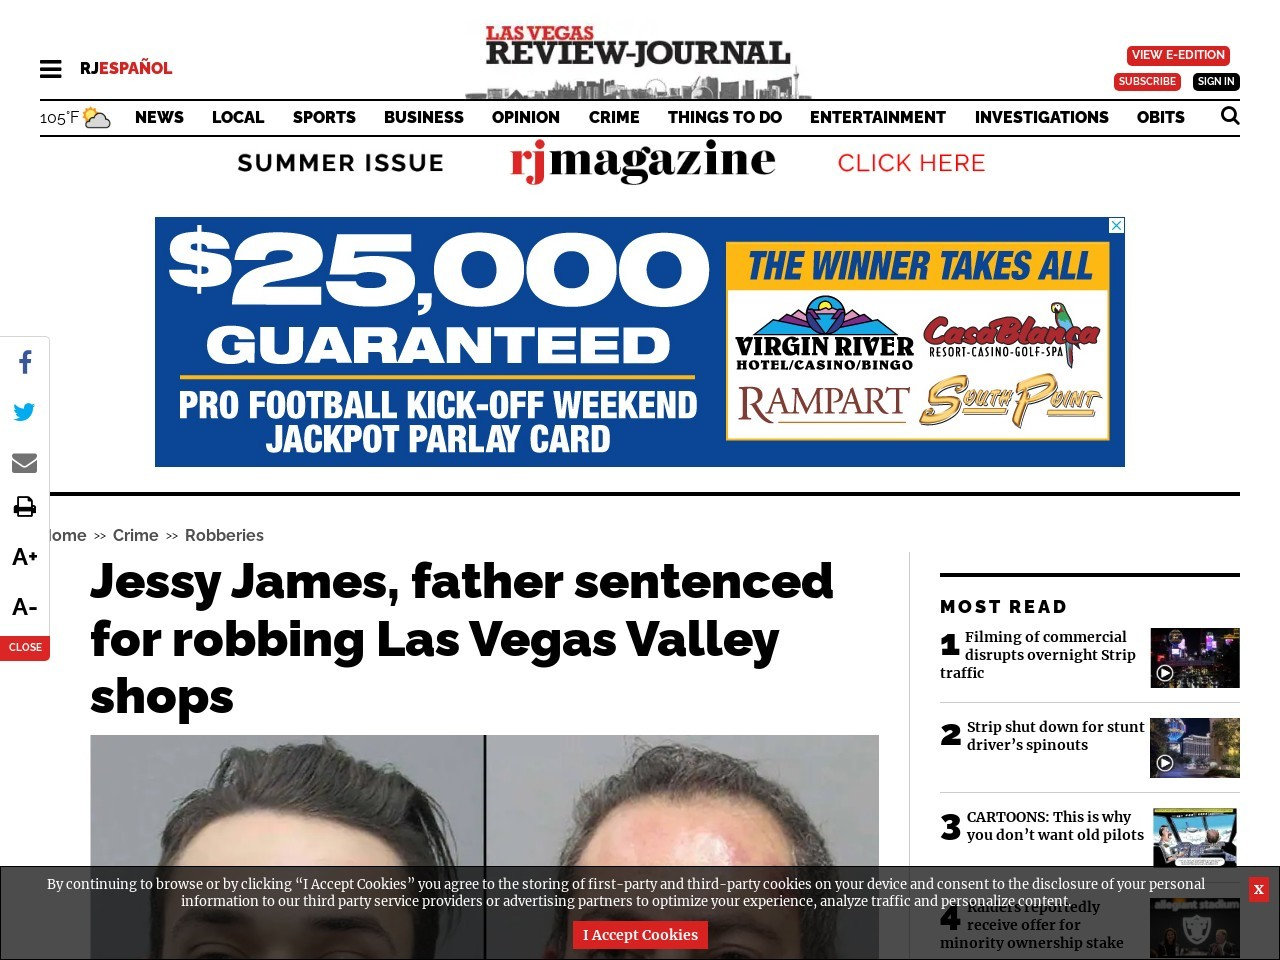 Jessy James, father sentenced for robbing Las Vegas Valley shops